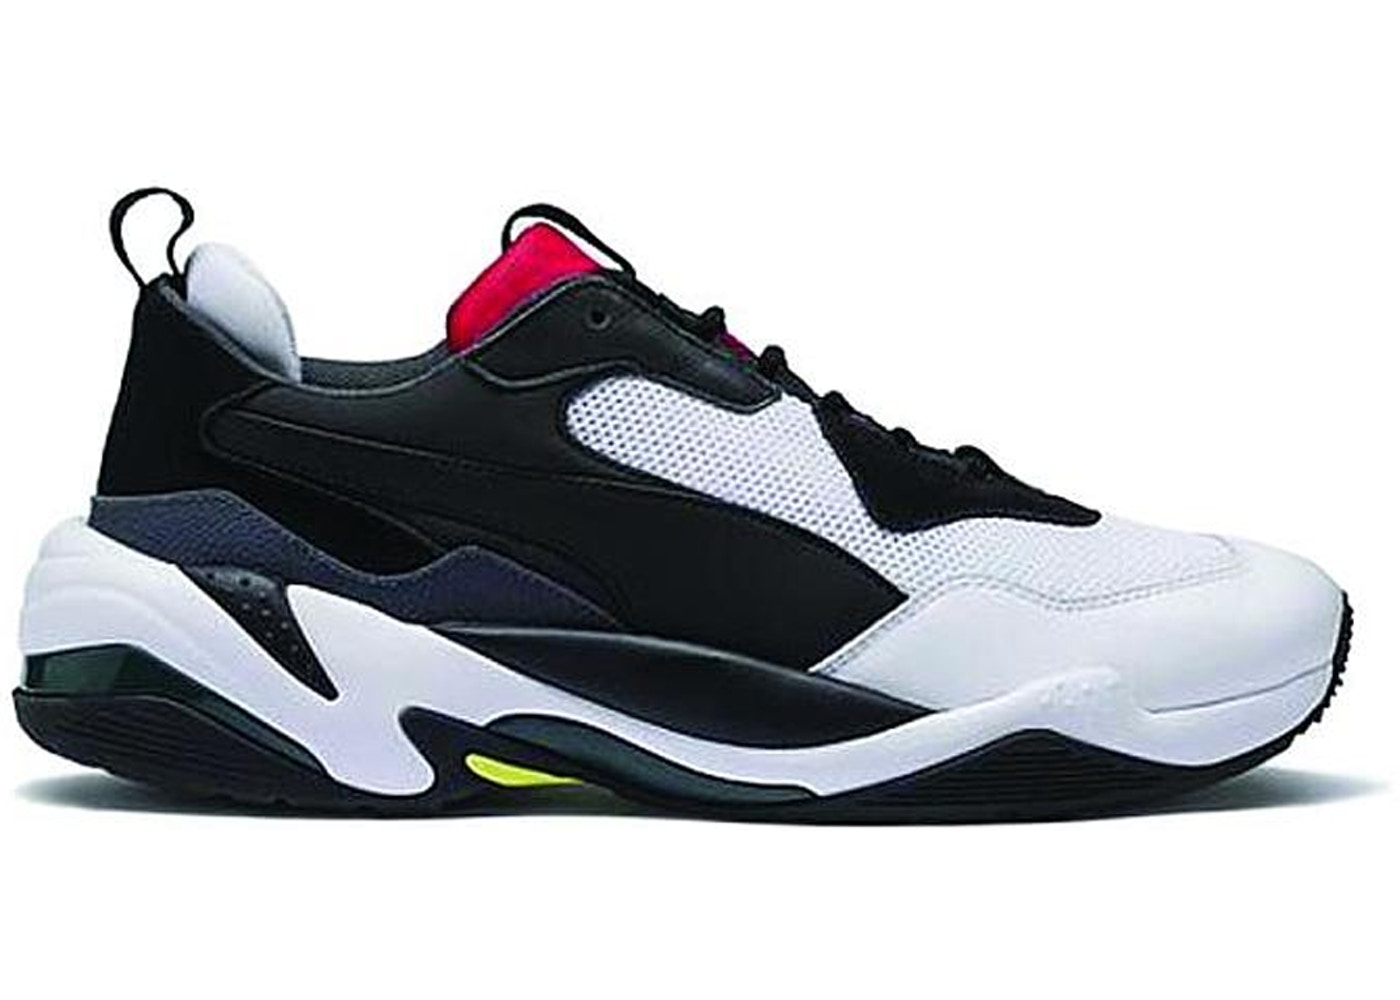 Puma Thunder Spectra Black High Risk Red